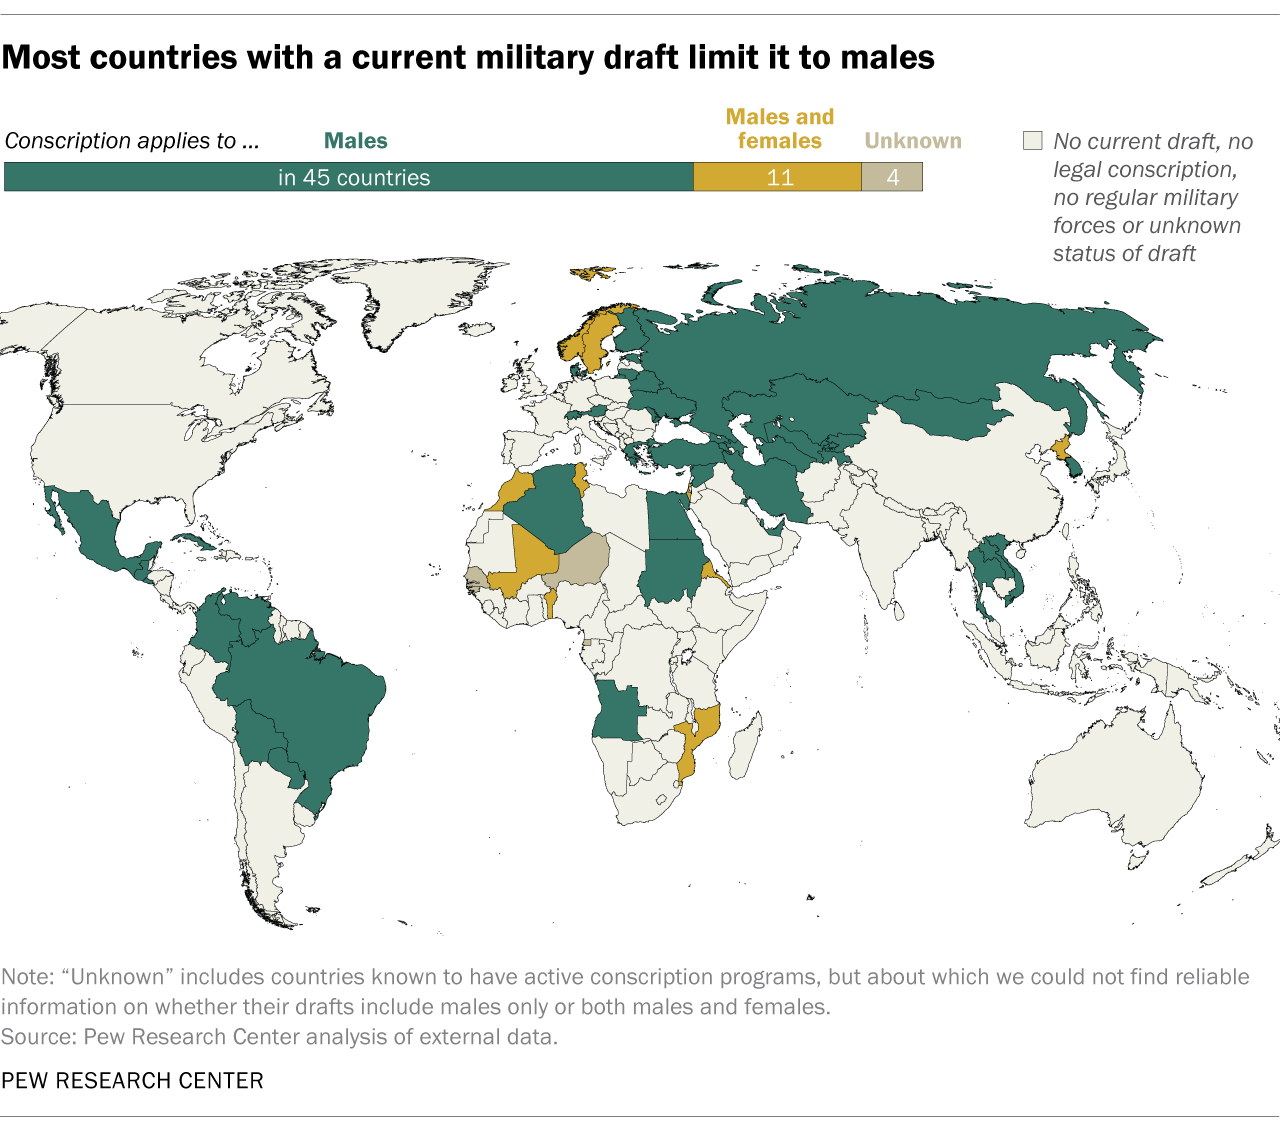 Most countries with a current military draft limit it to males